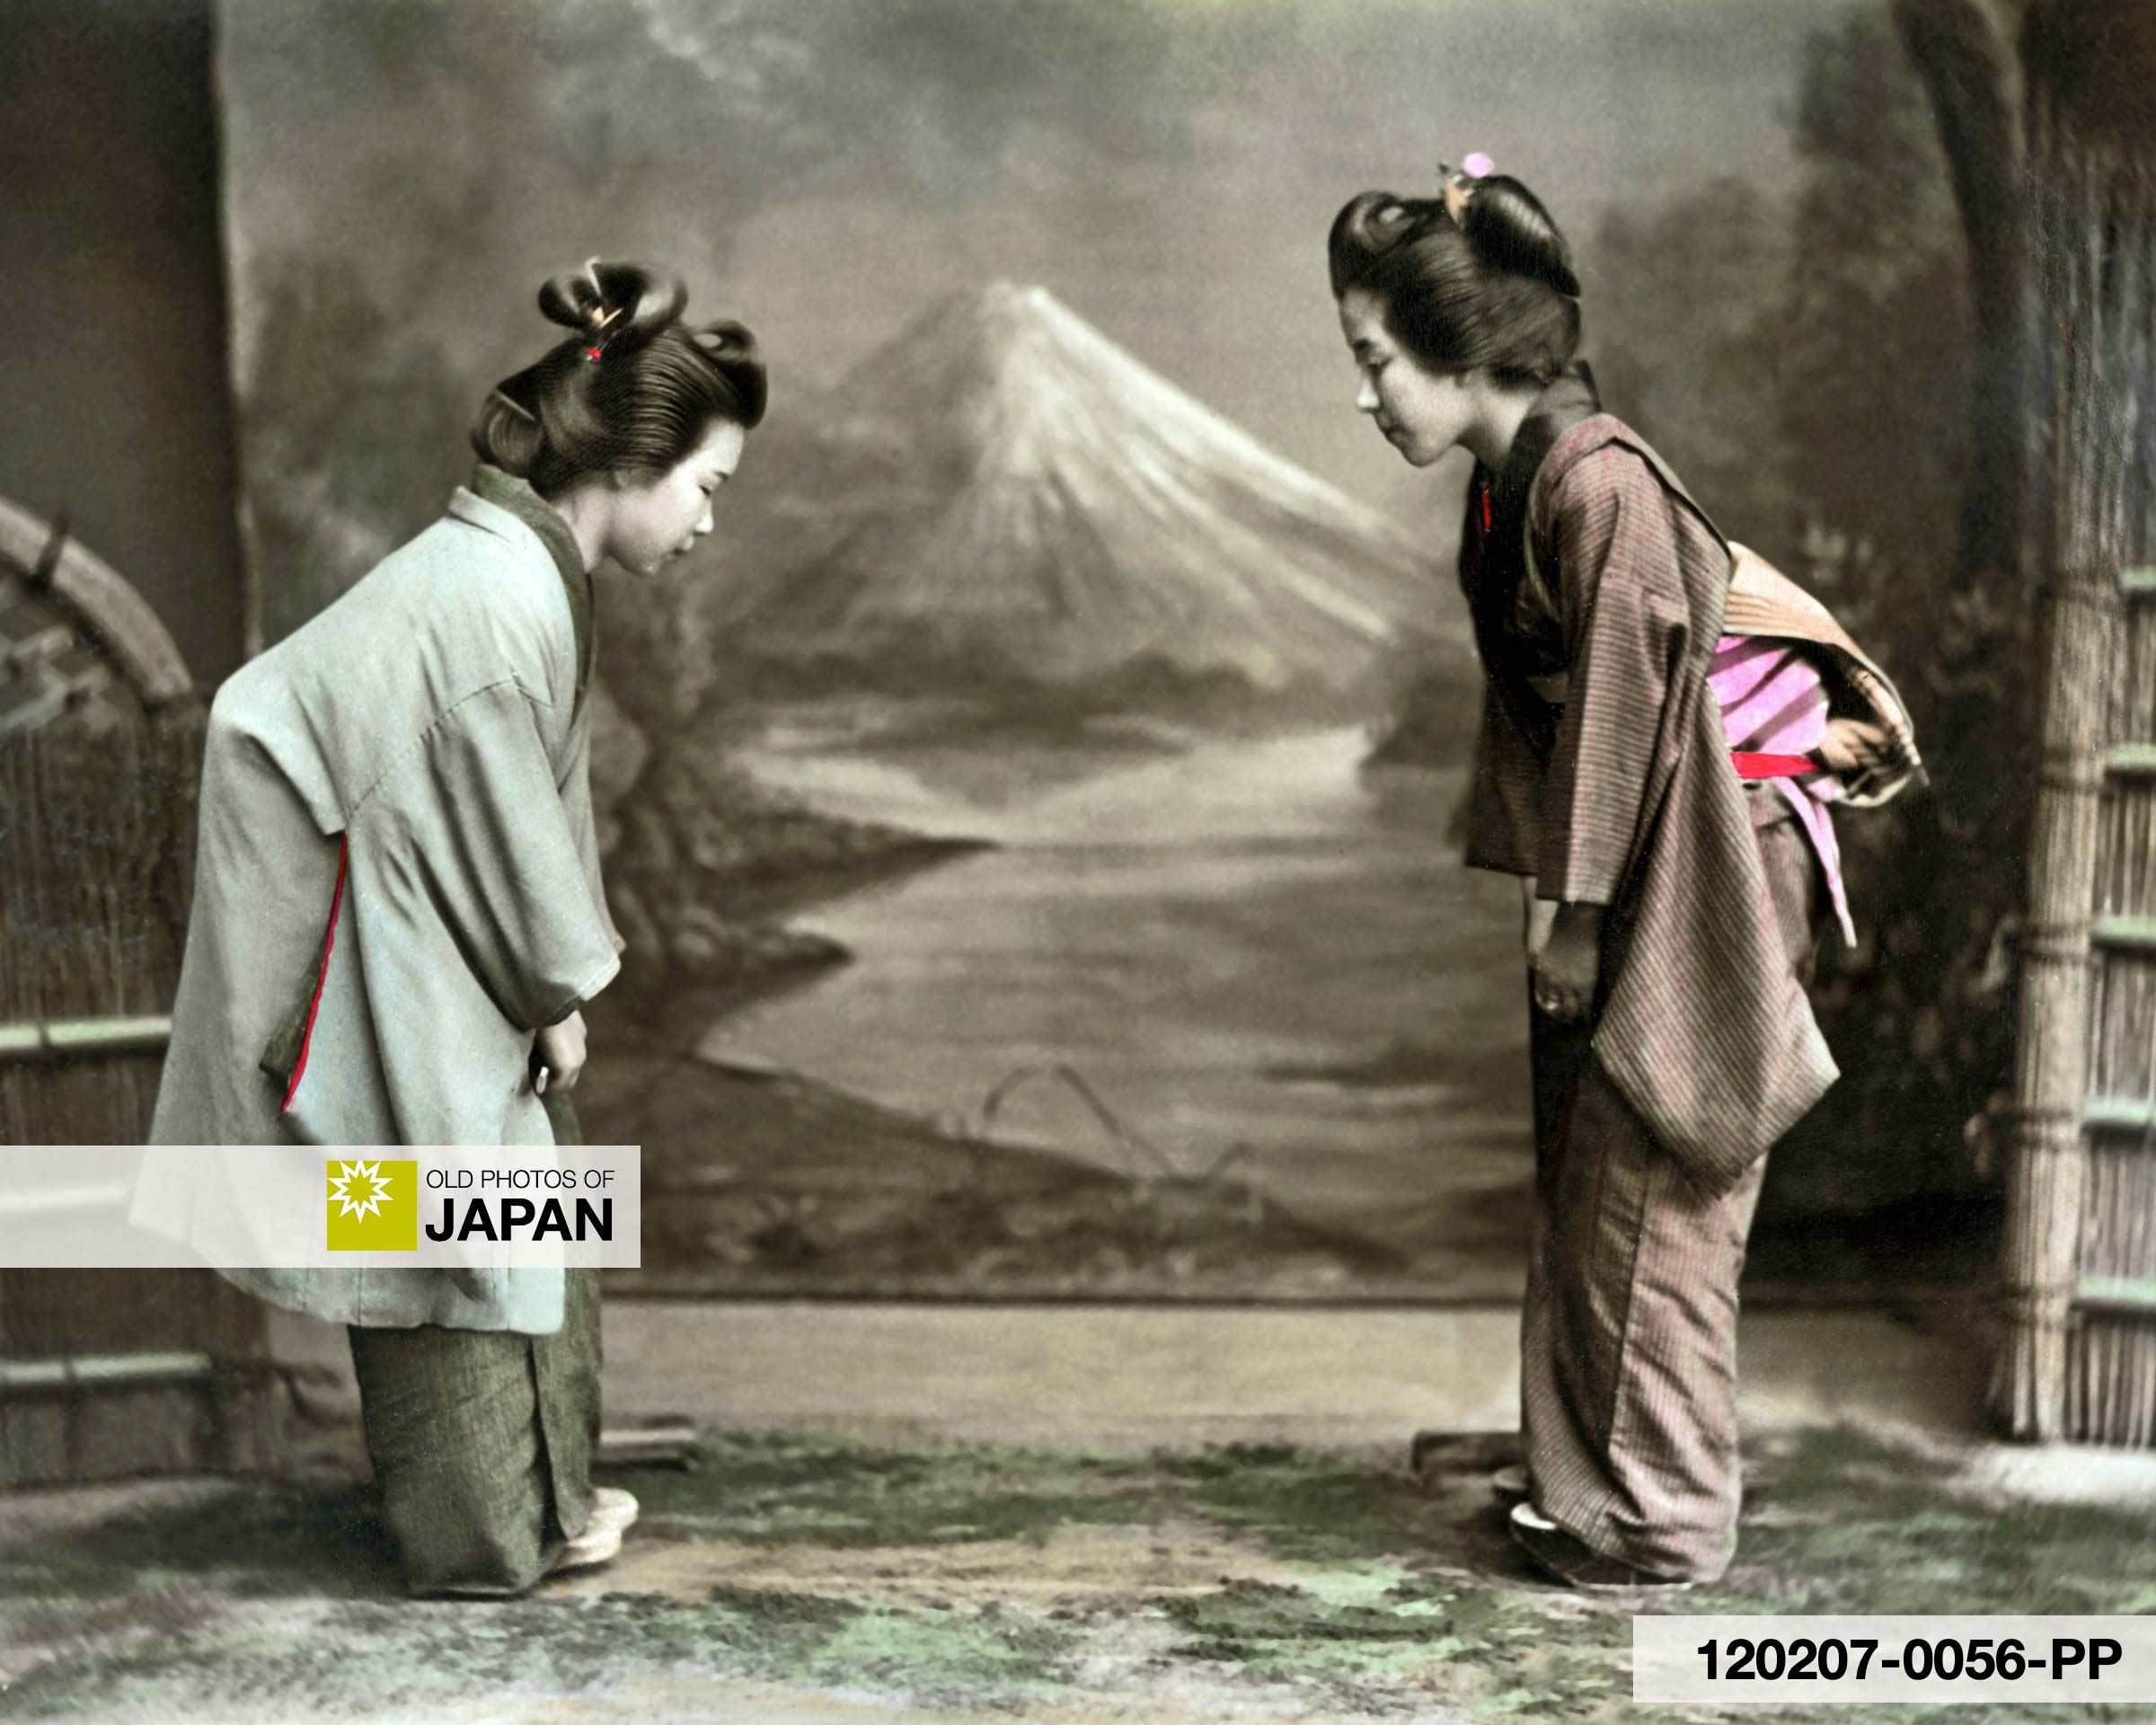 Two women bowing to each other.